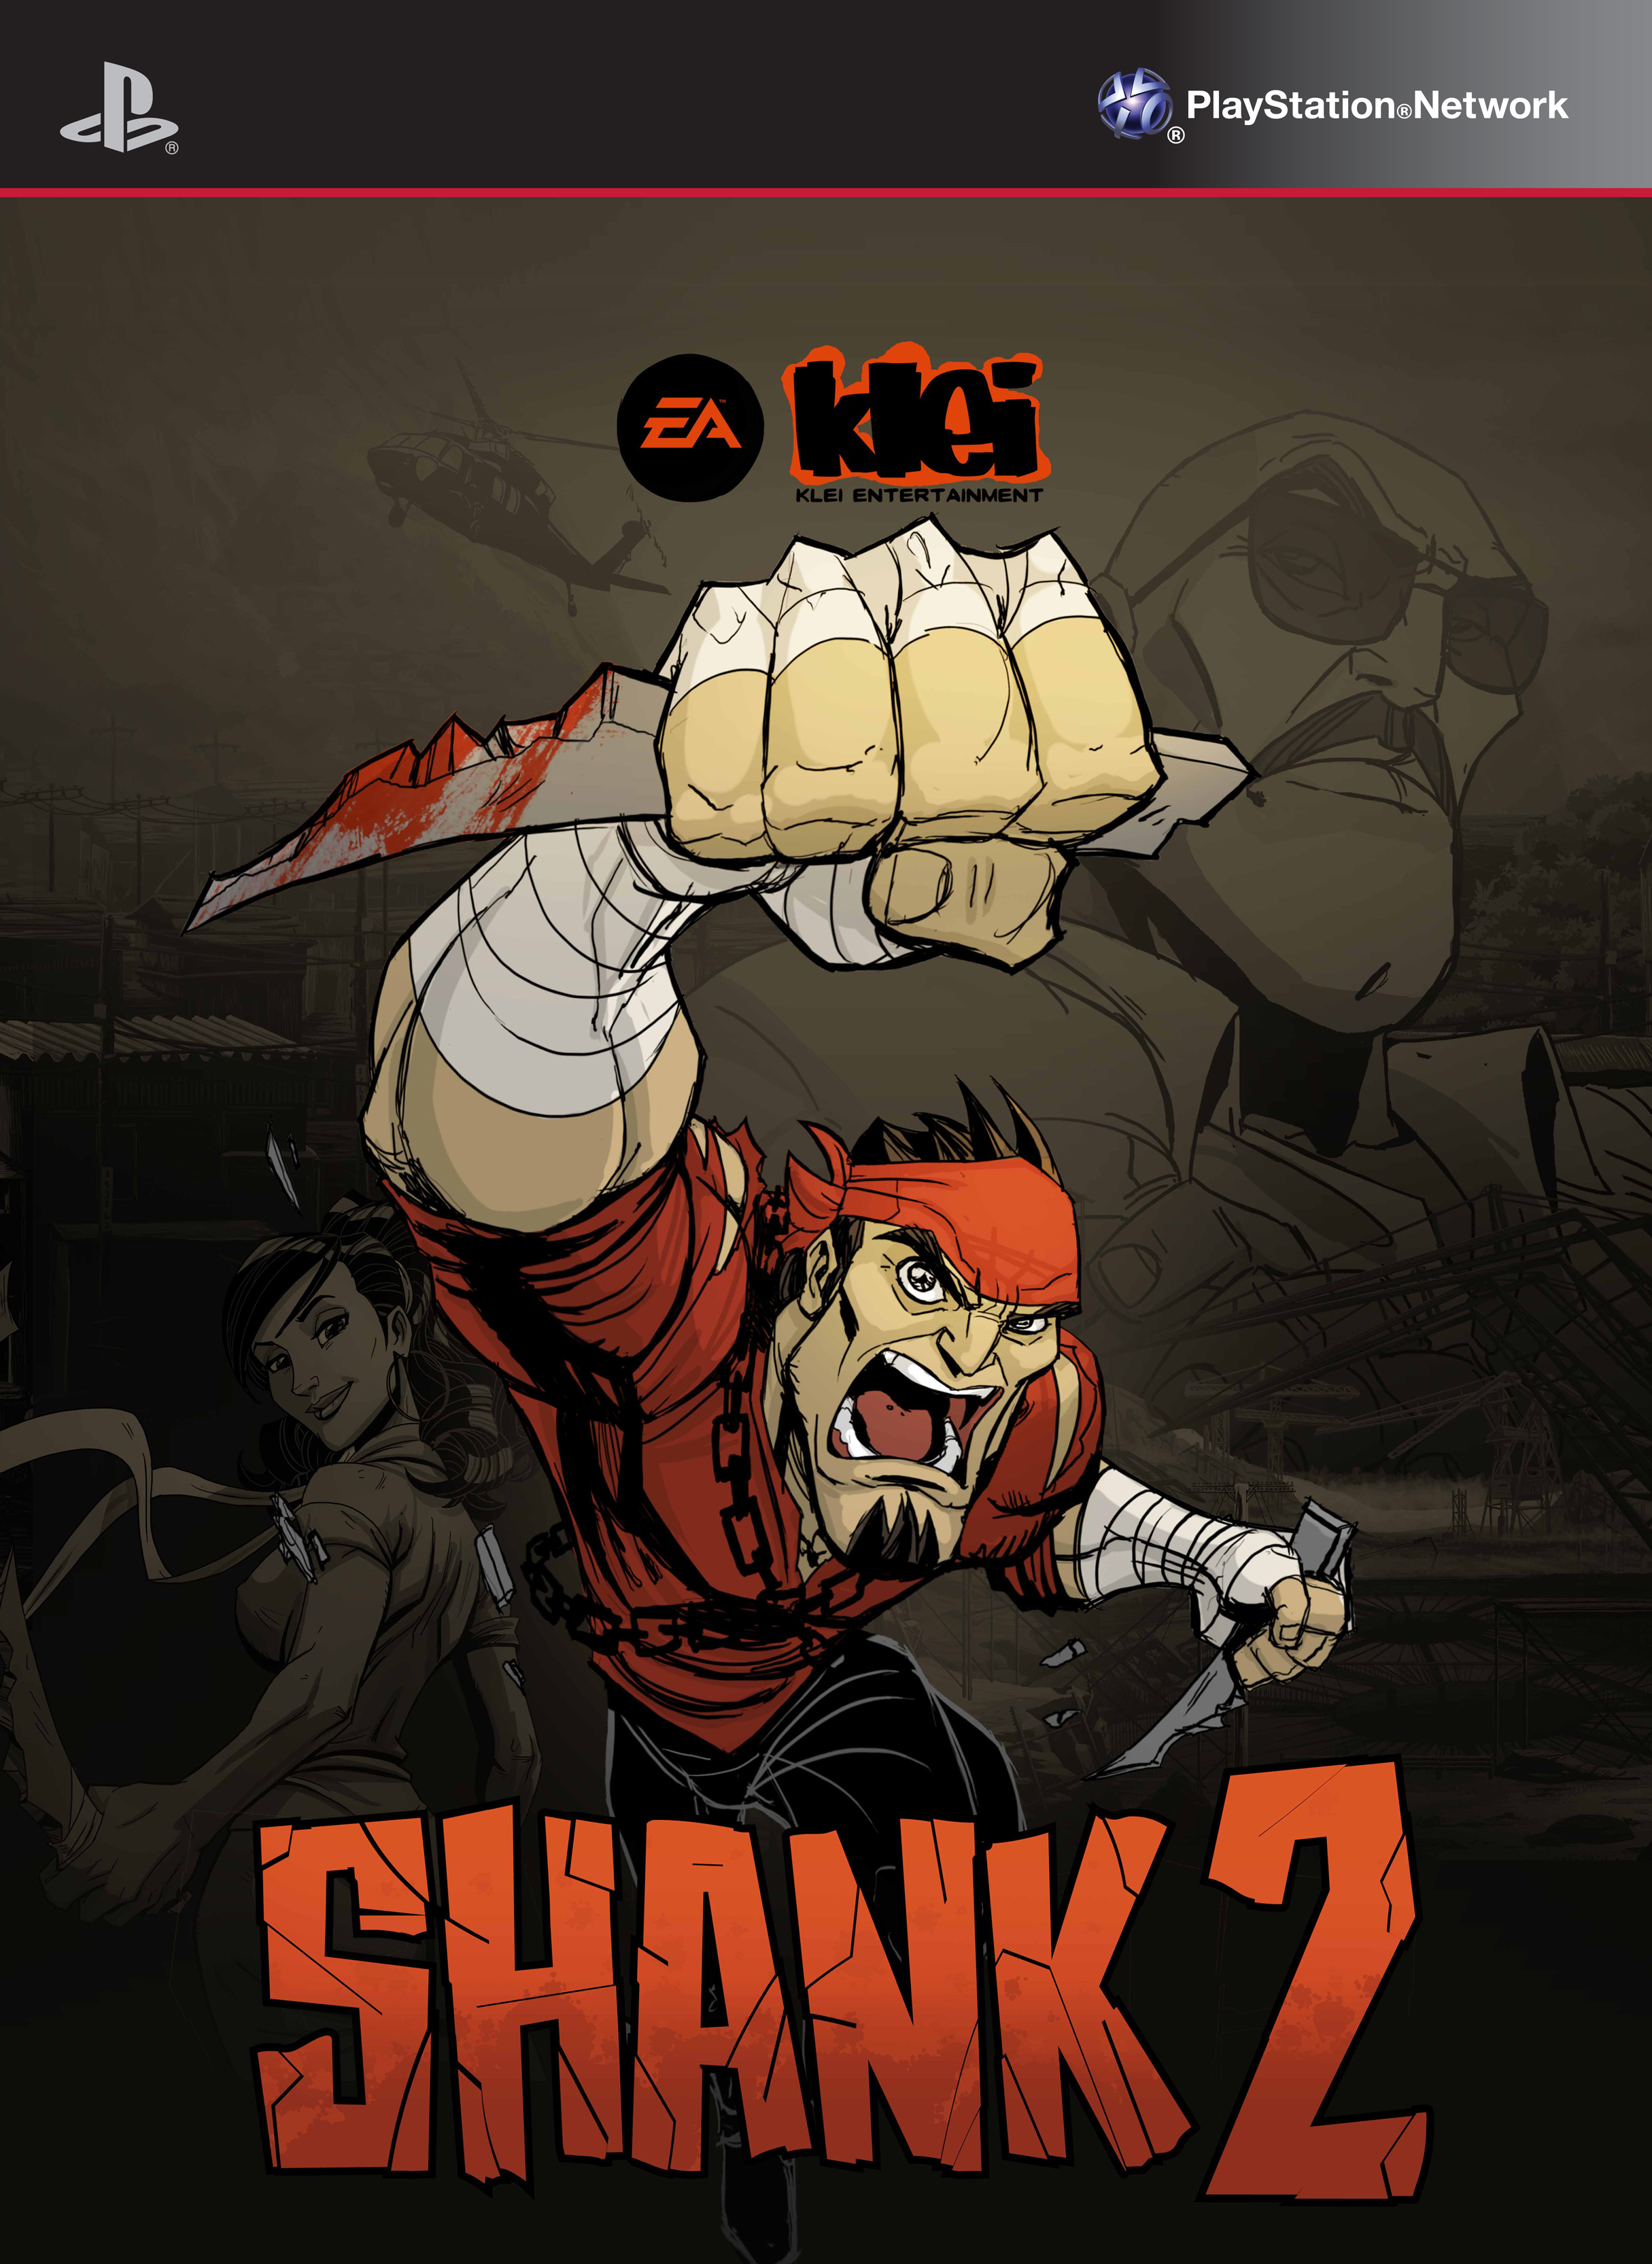 Shank 2 Playstation Network